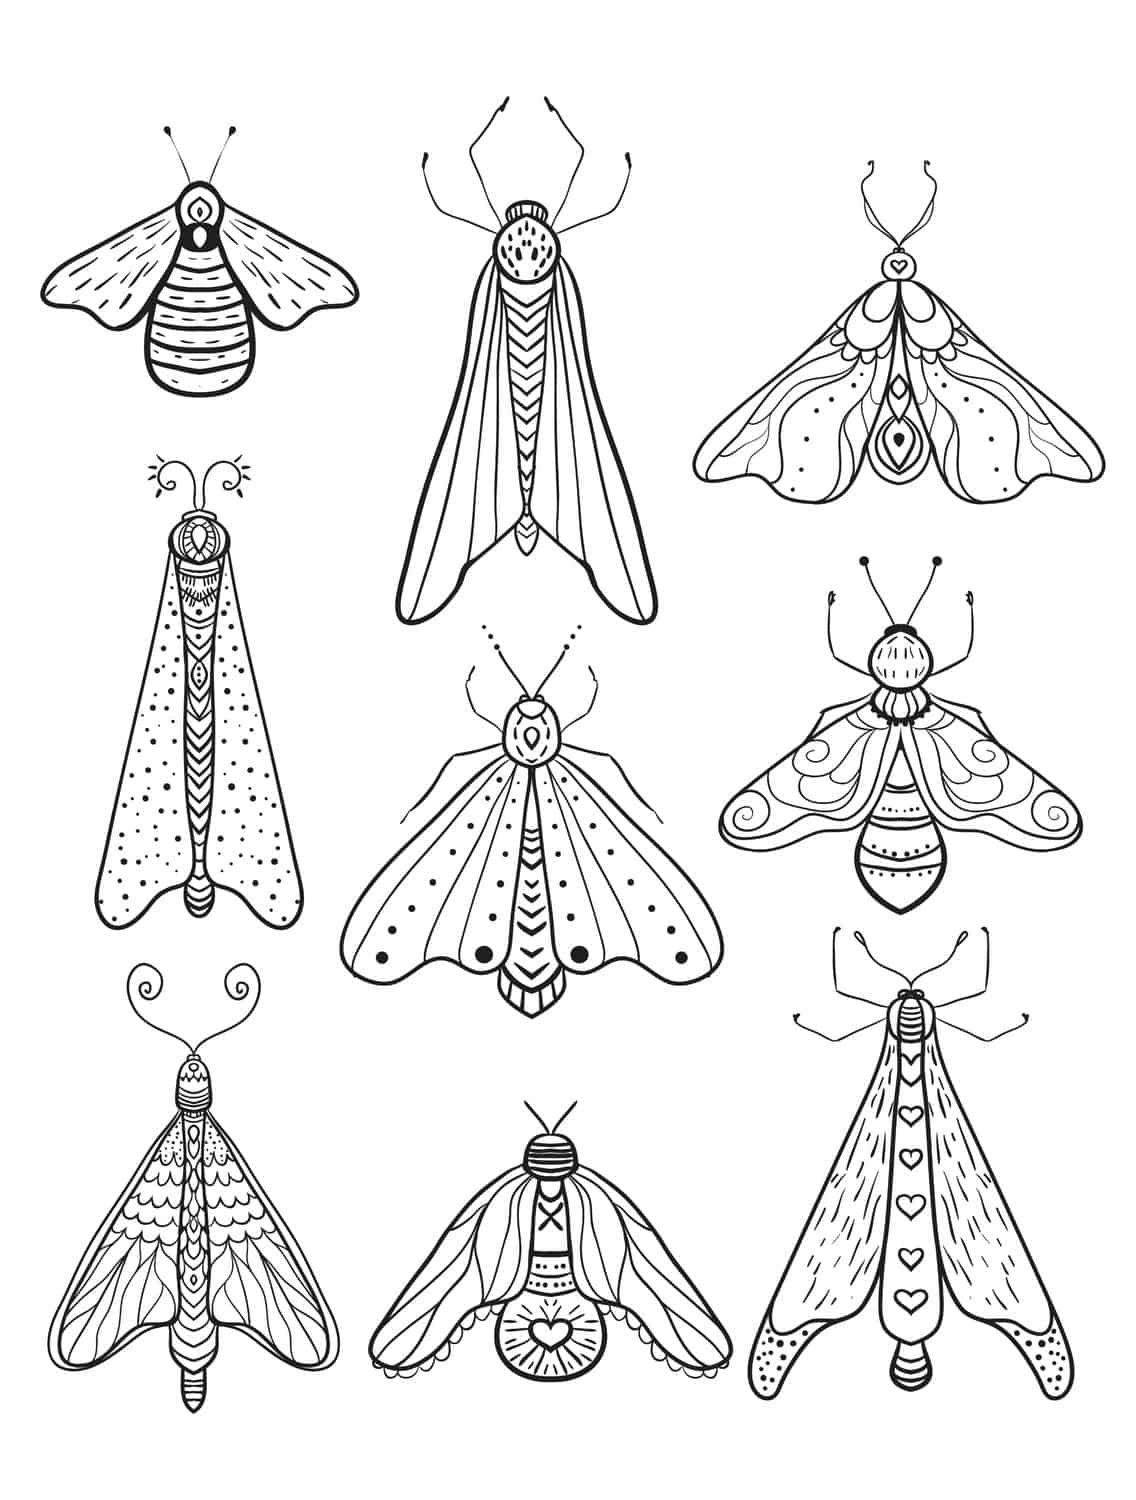 23 Free Printable Insect & Animal Adult Coloring Pages - Page 10 of ...